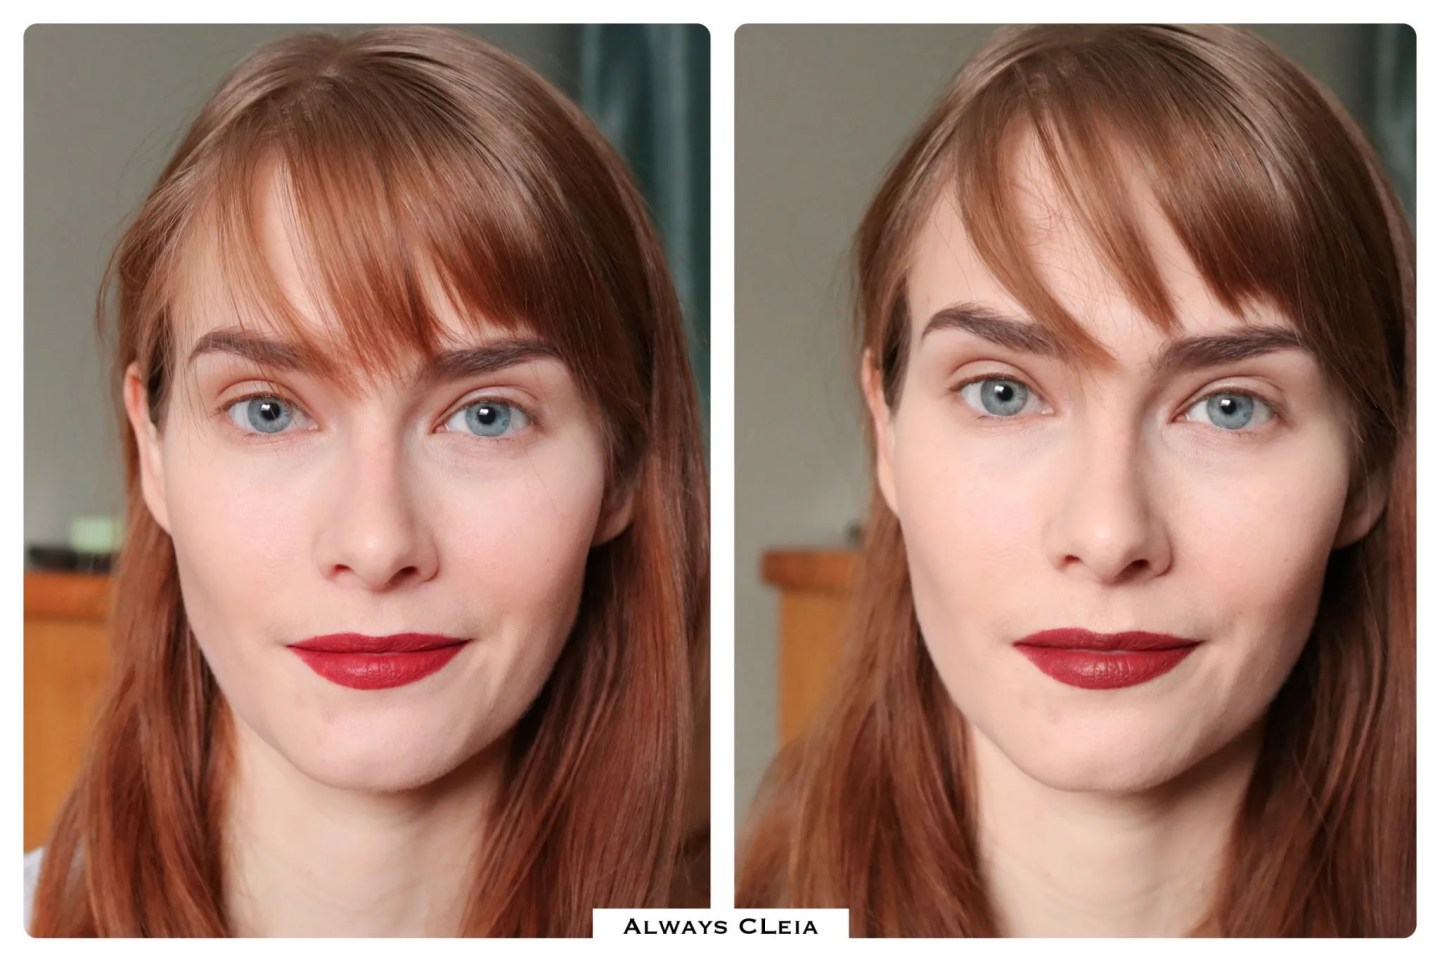 Laura Mercier Translucent Setting Powder Glow Before & After